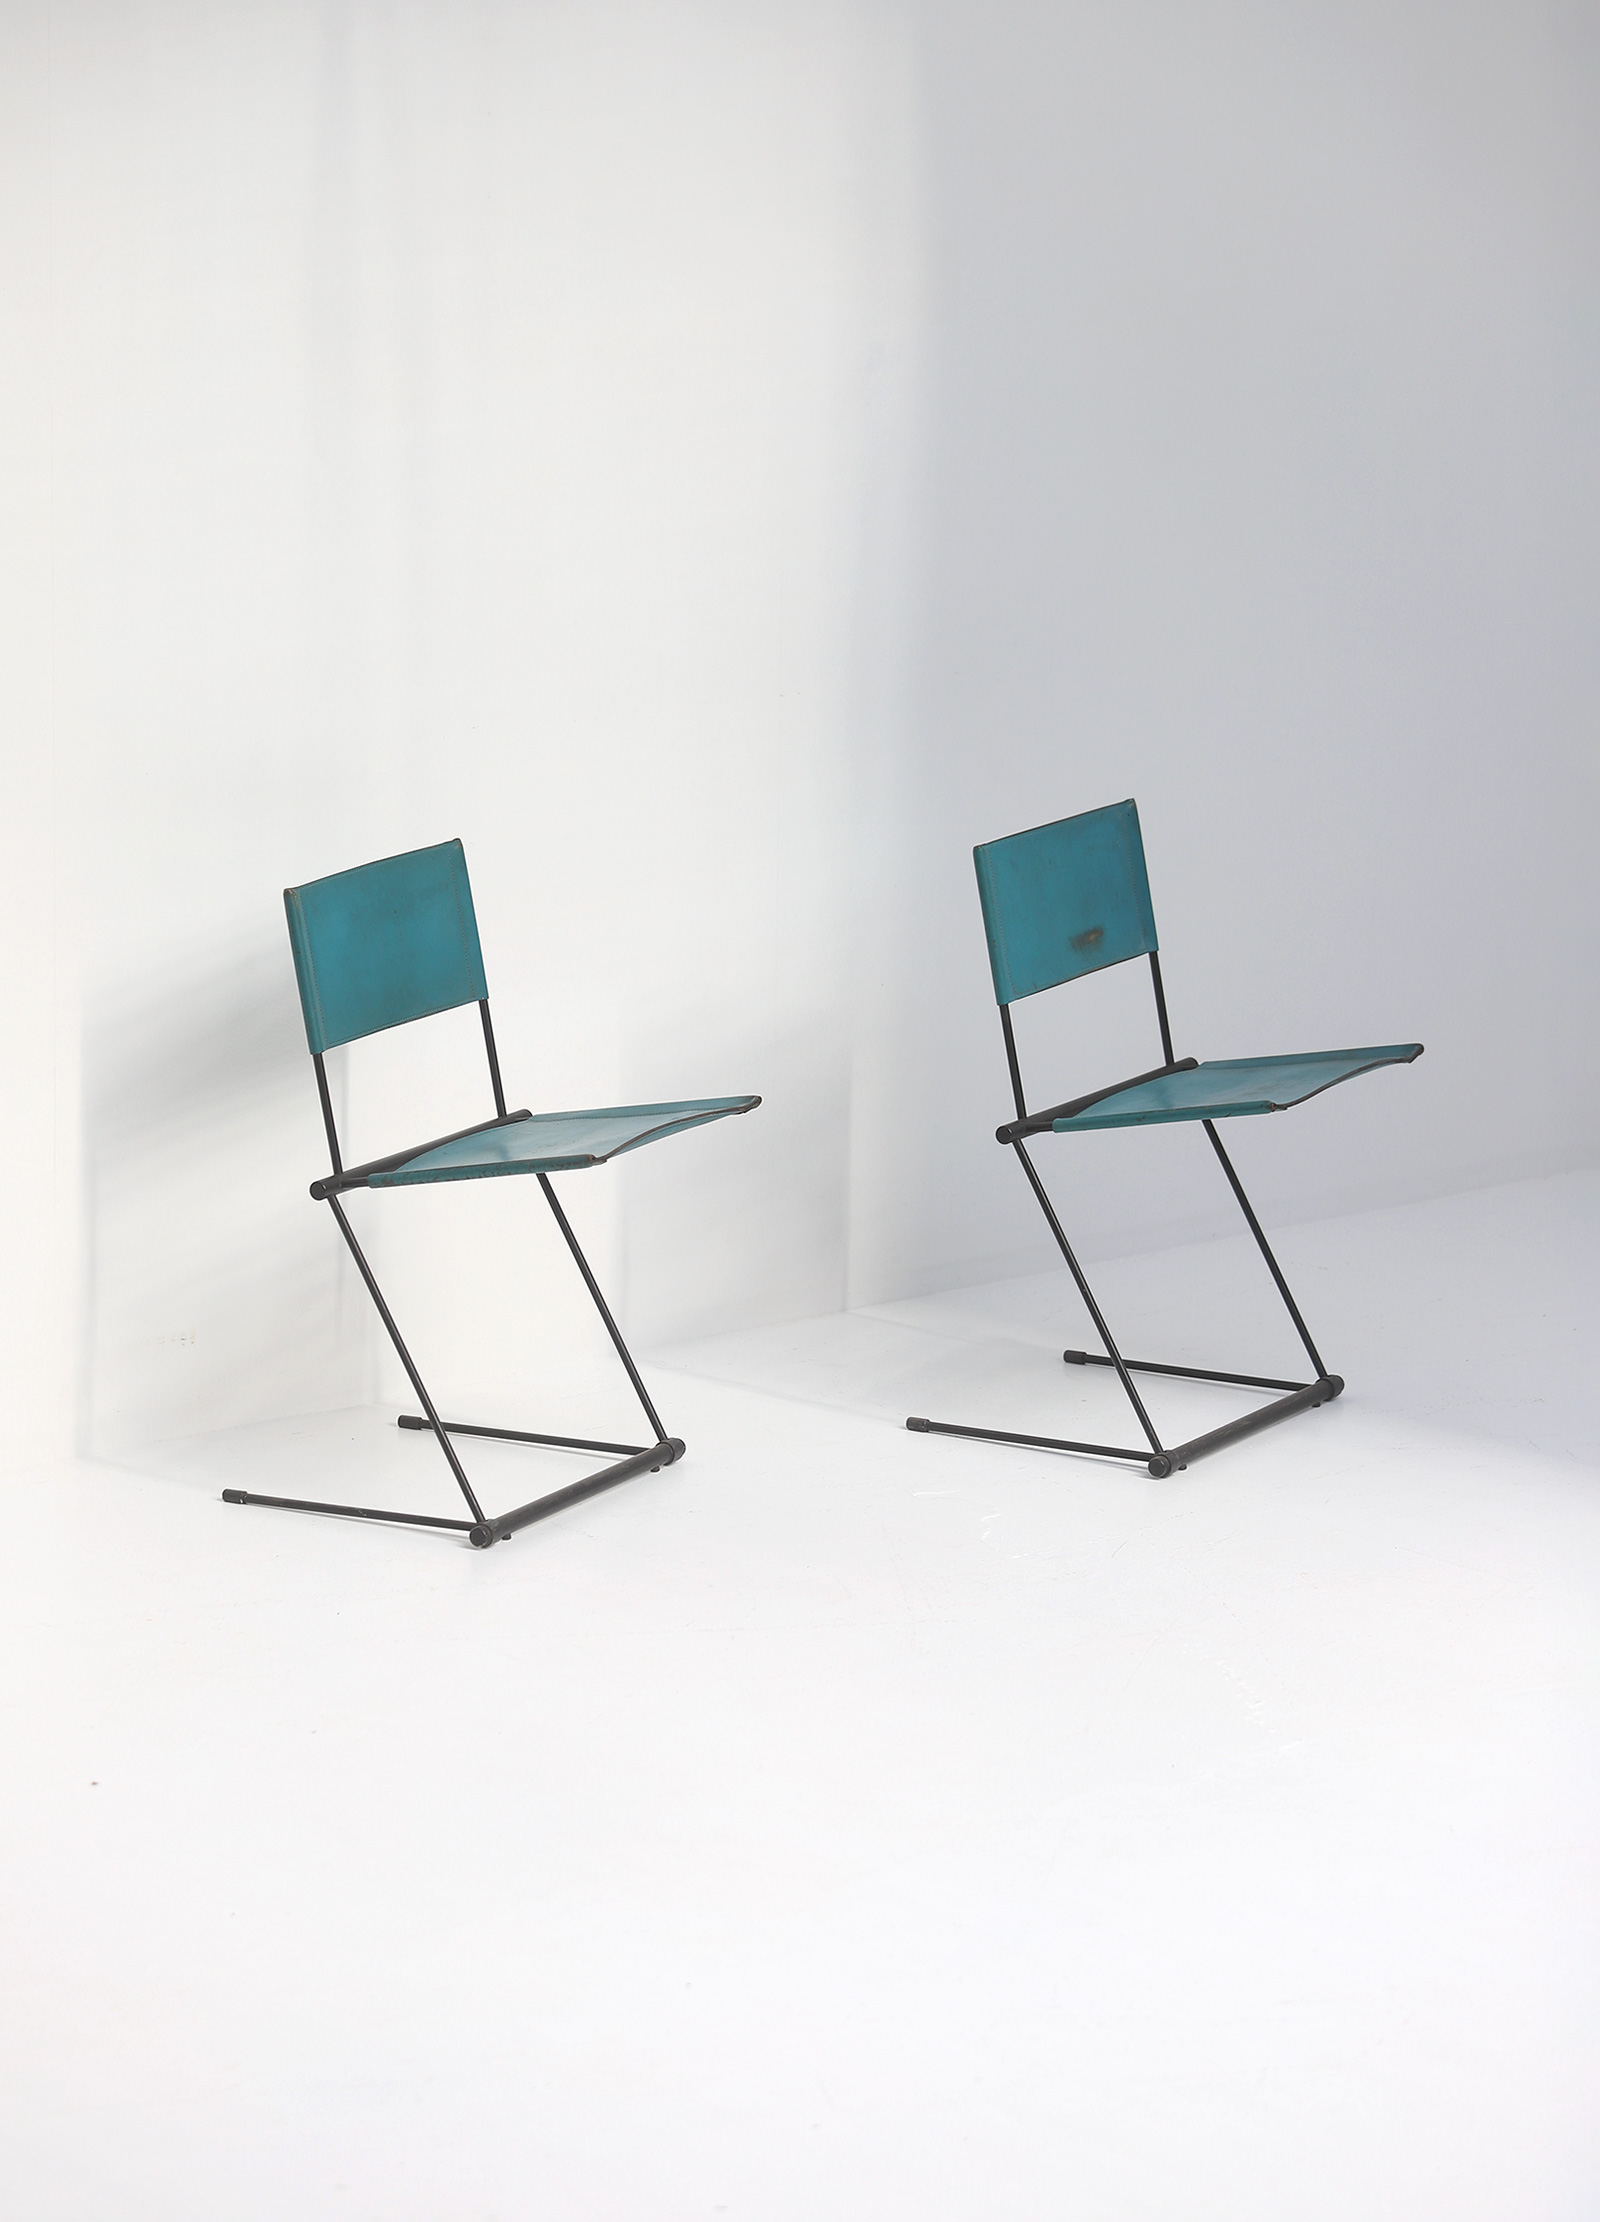 Ballerina Chairs By Herbert Ohl For Matteo Grassiimage 1